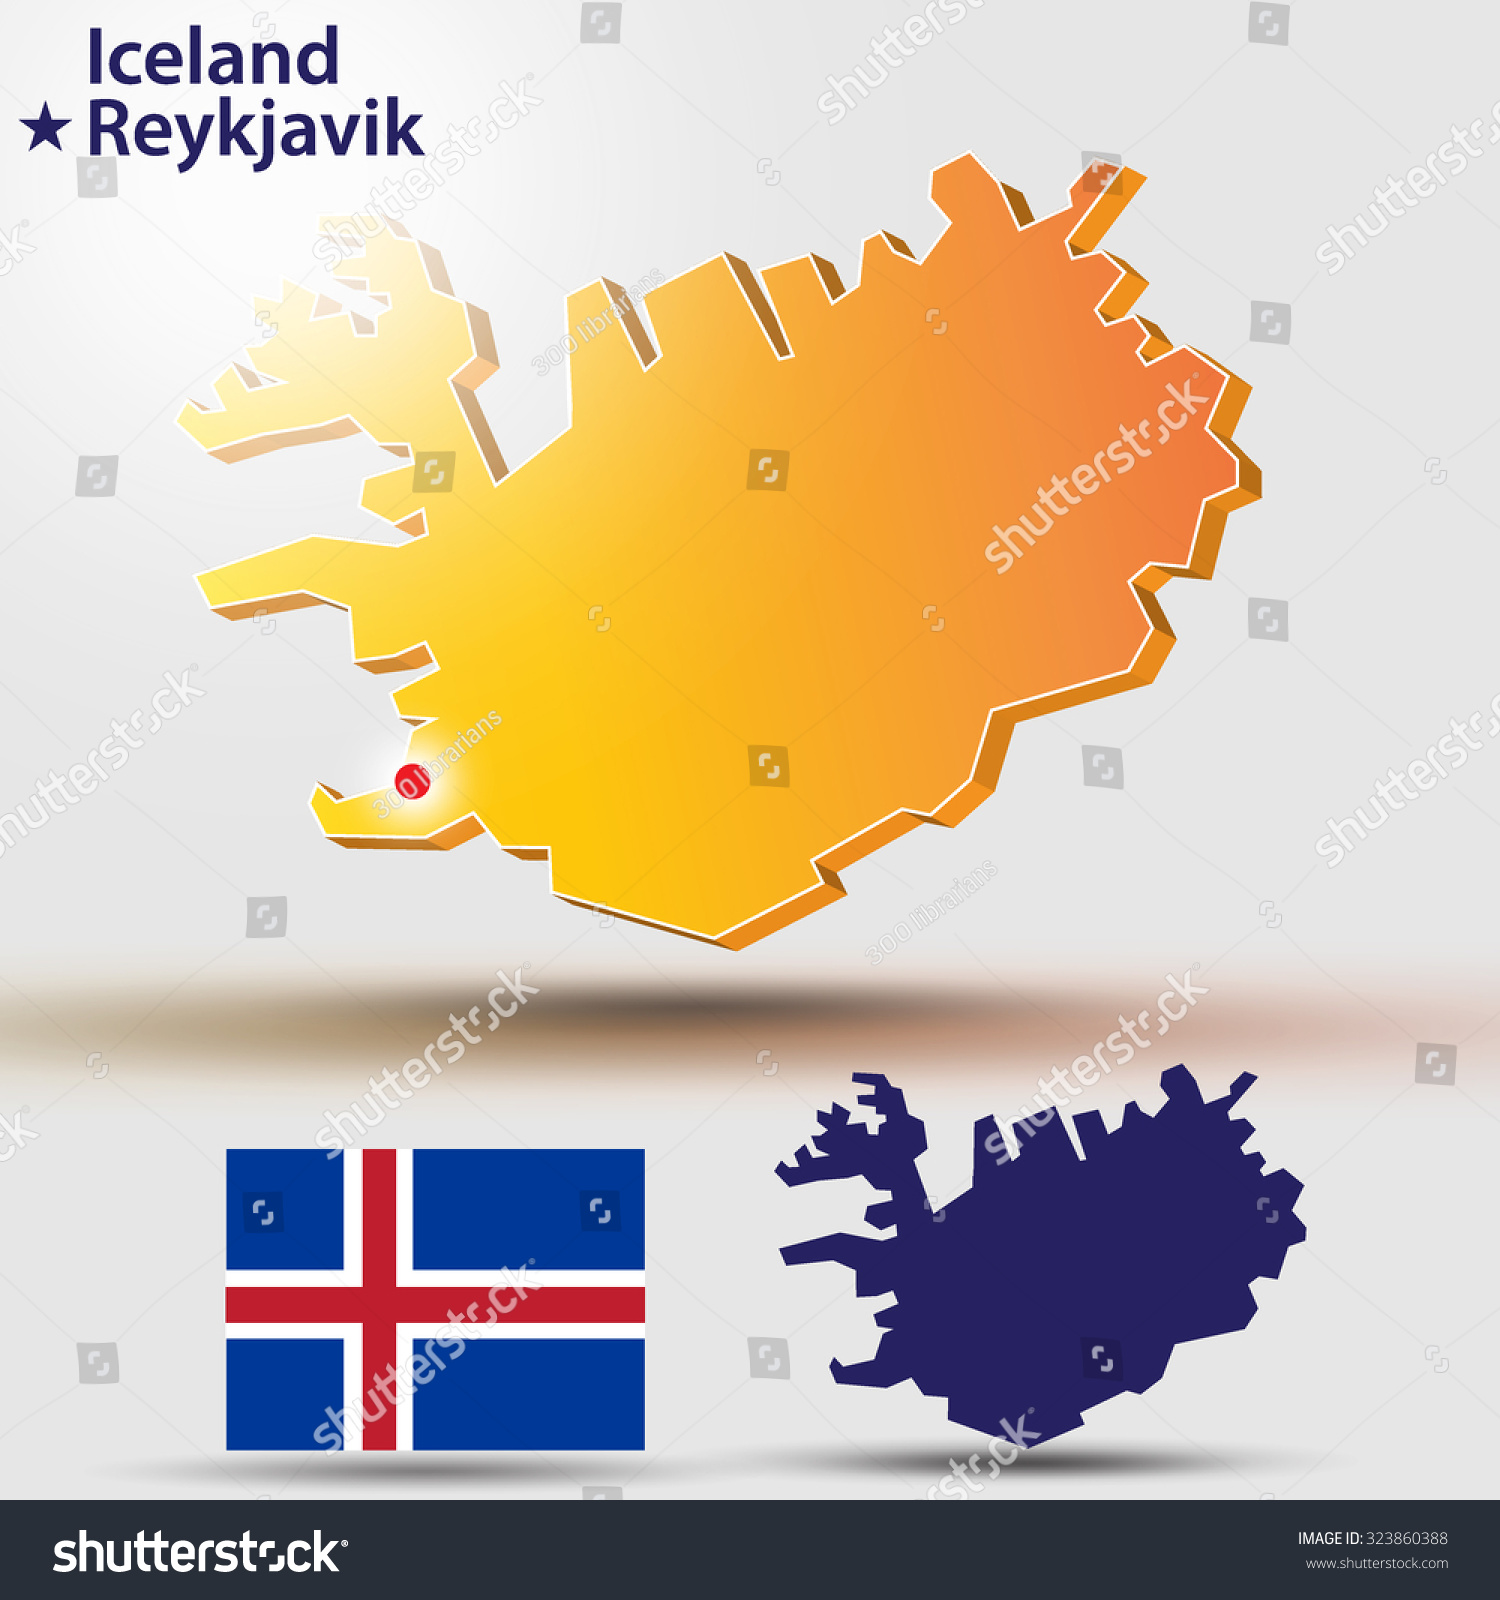 Astounding iceland map vector pictures